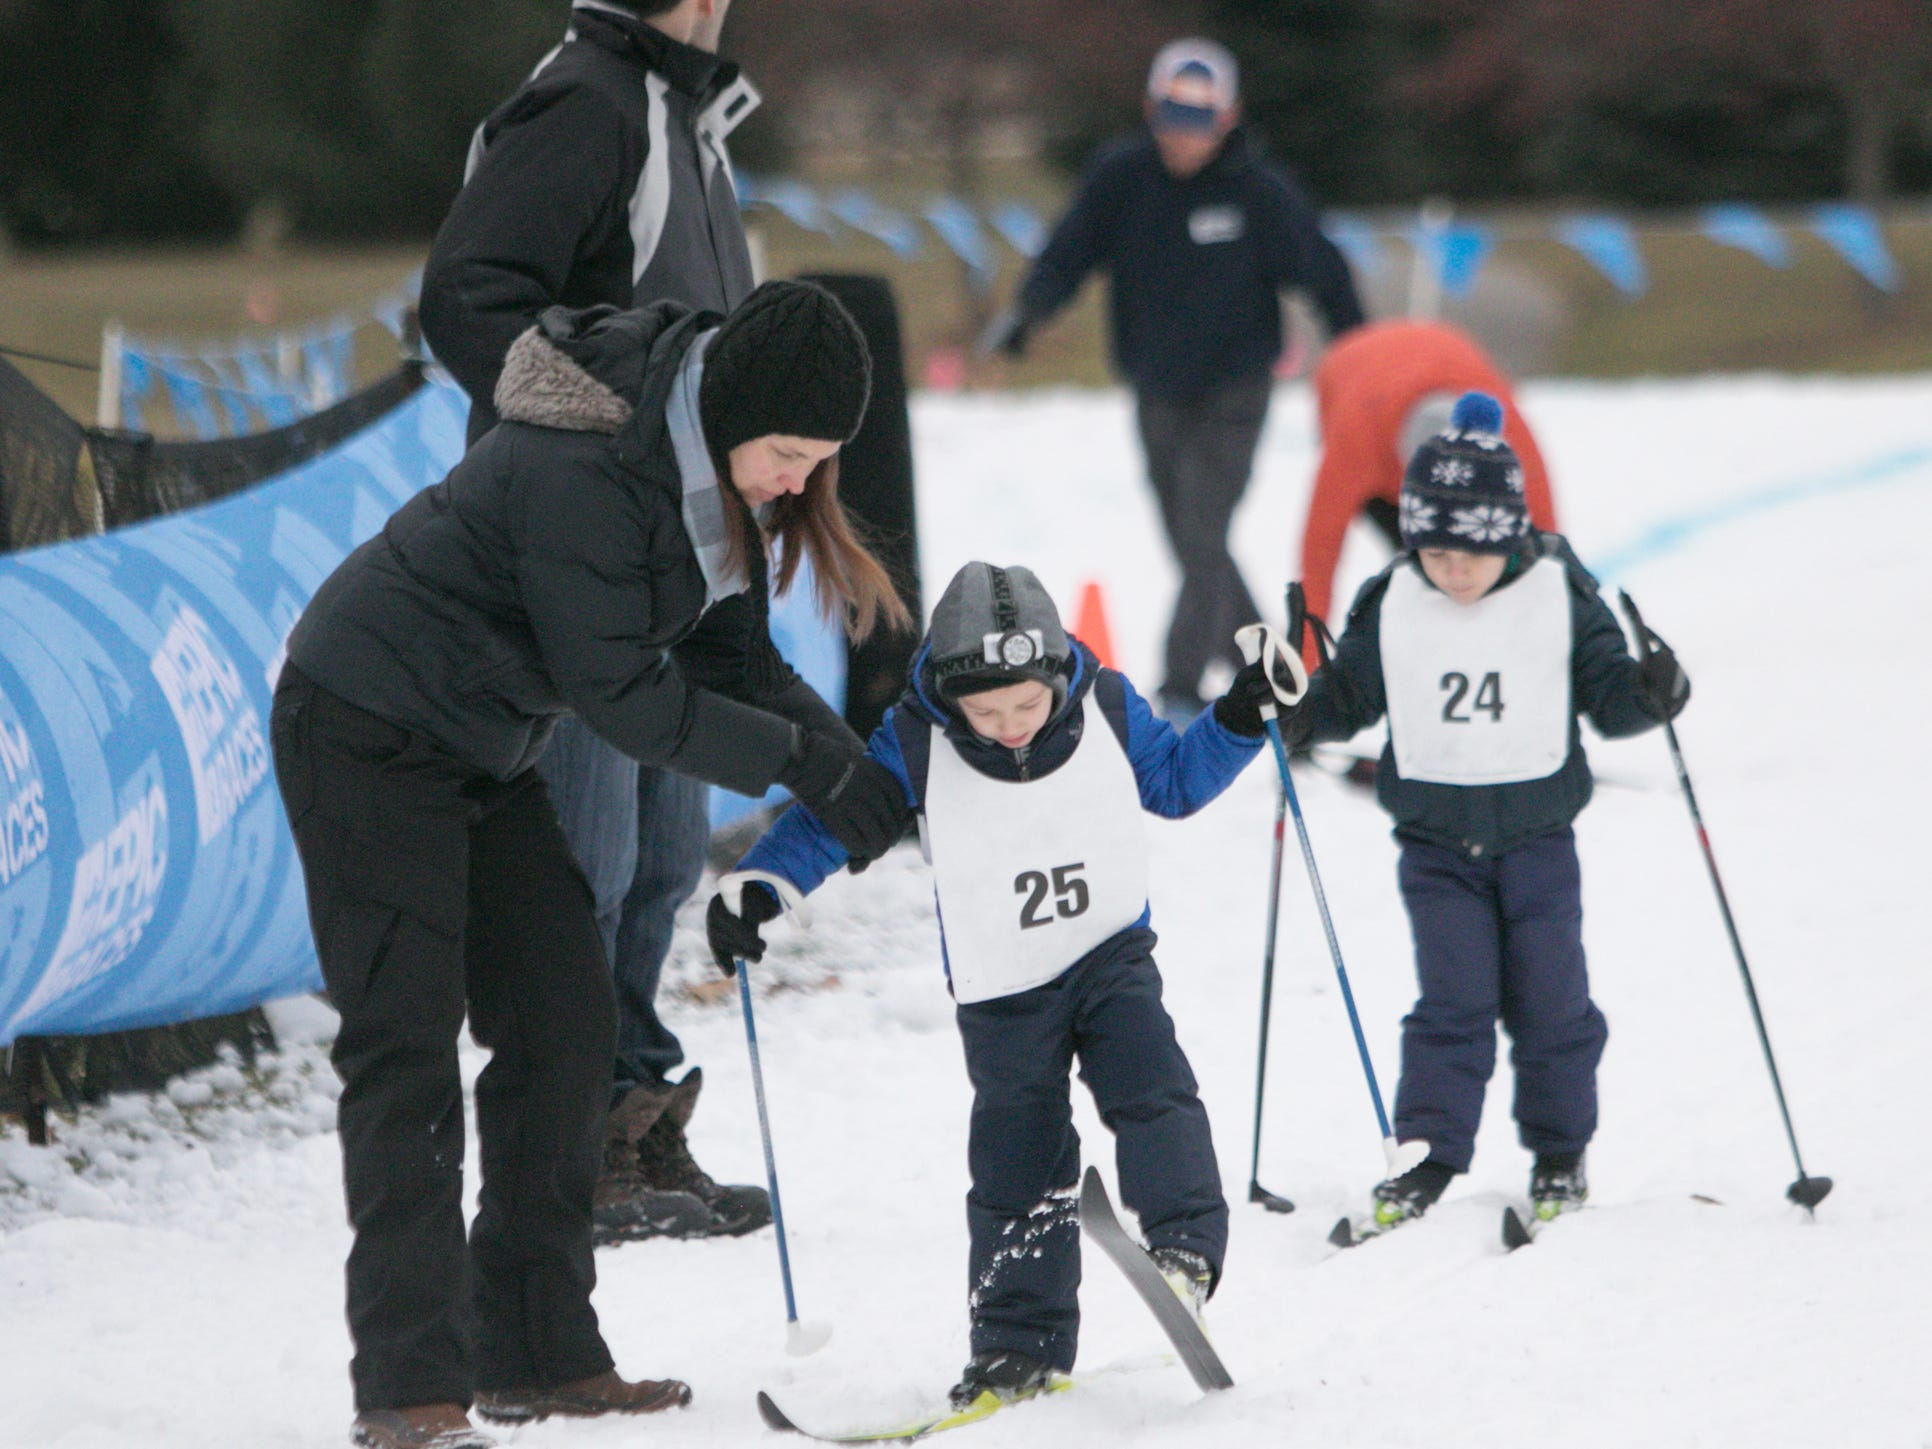 Jodie Haberkorn assists Beckham Haberkorn, no. 25, as Greg Ehinger accompanies son Vincent in the Frosty Ski Fest Saturday, Jan. 12, 2019.